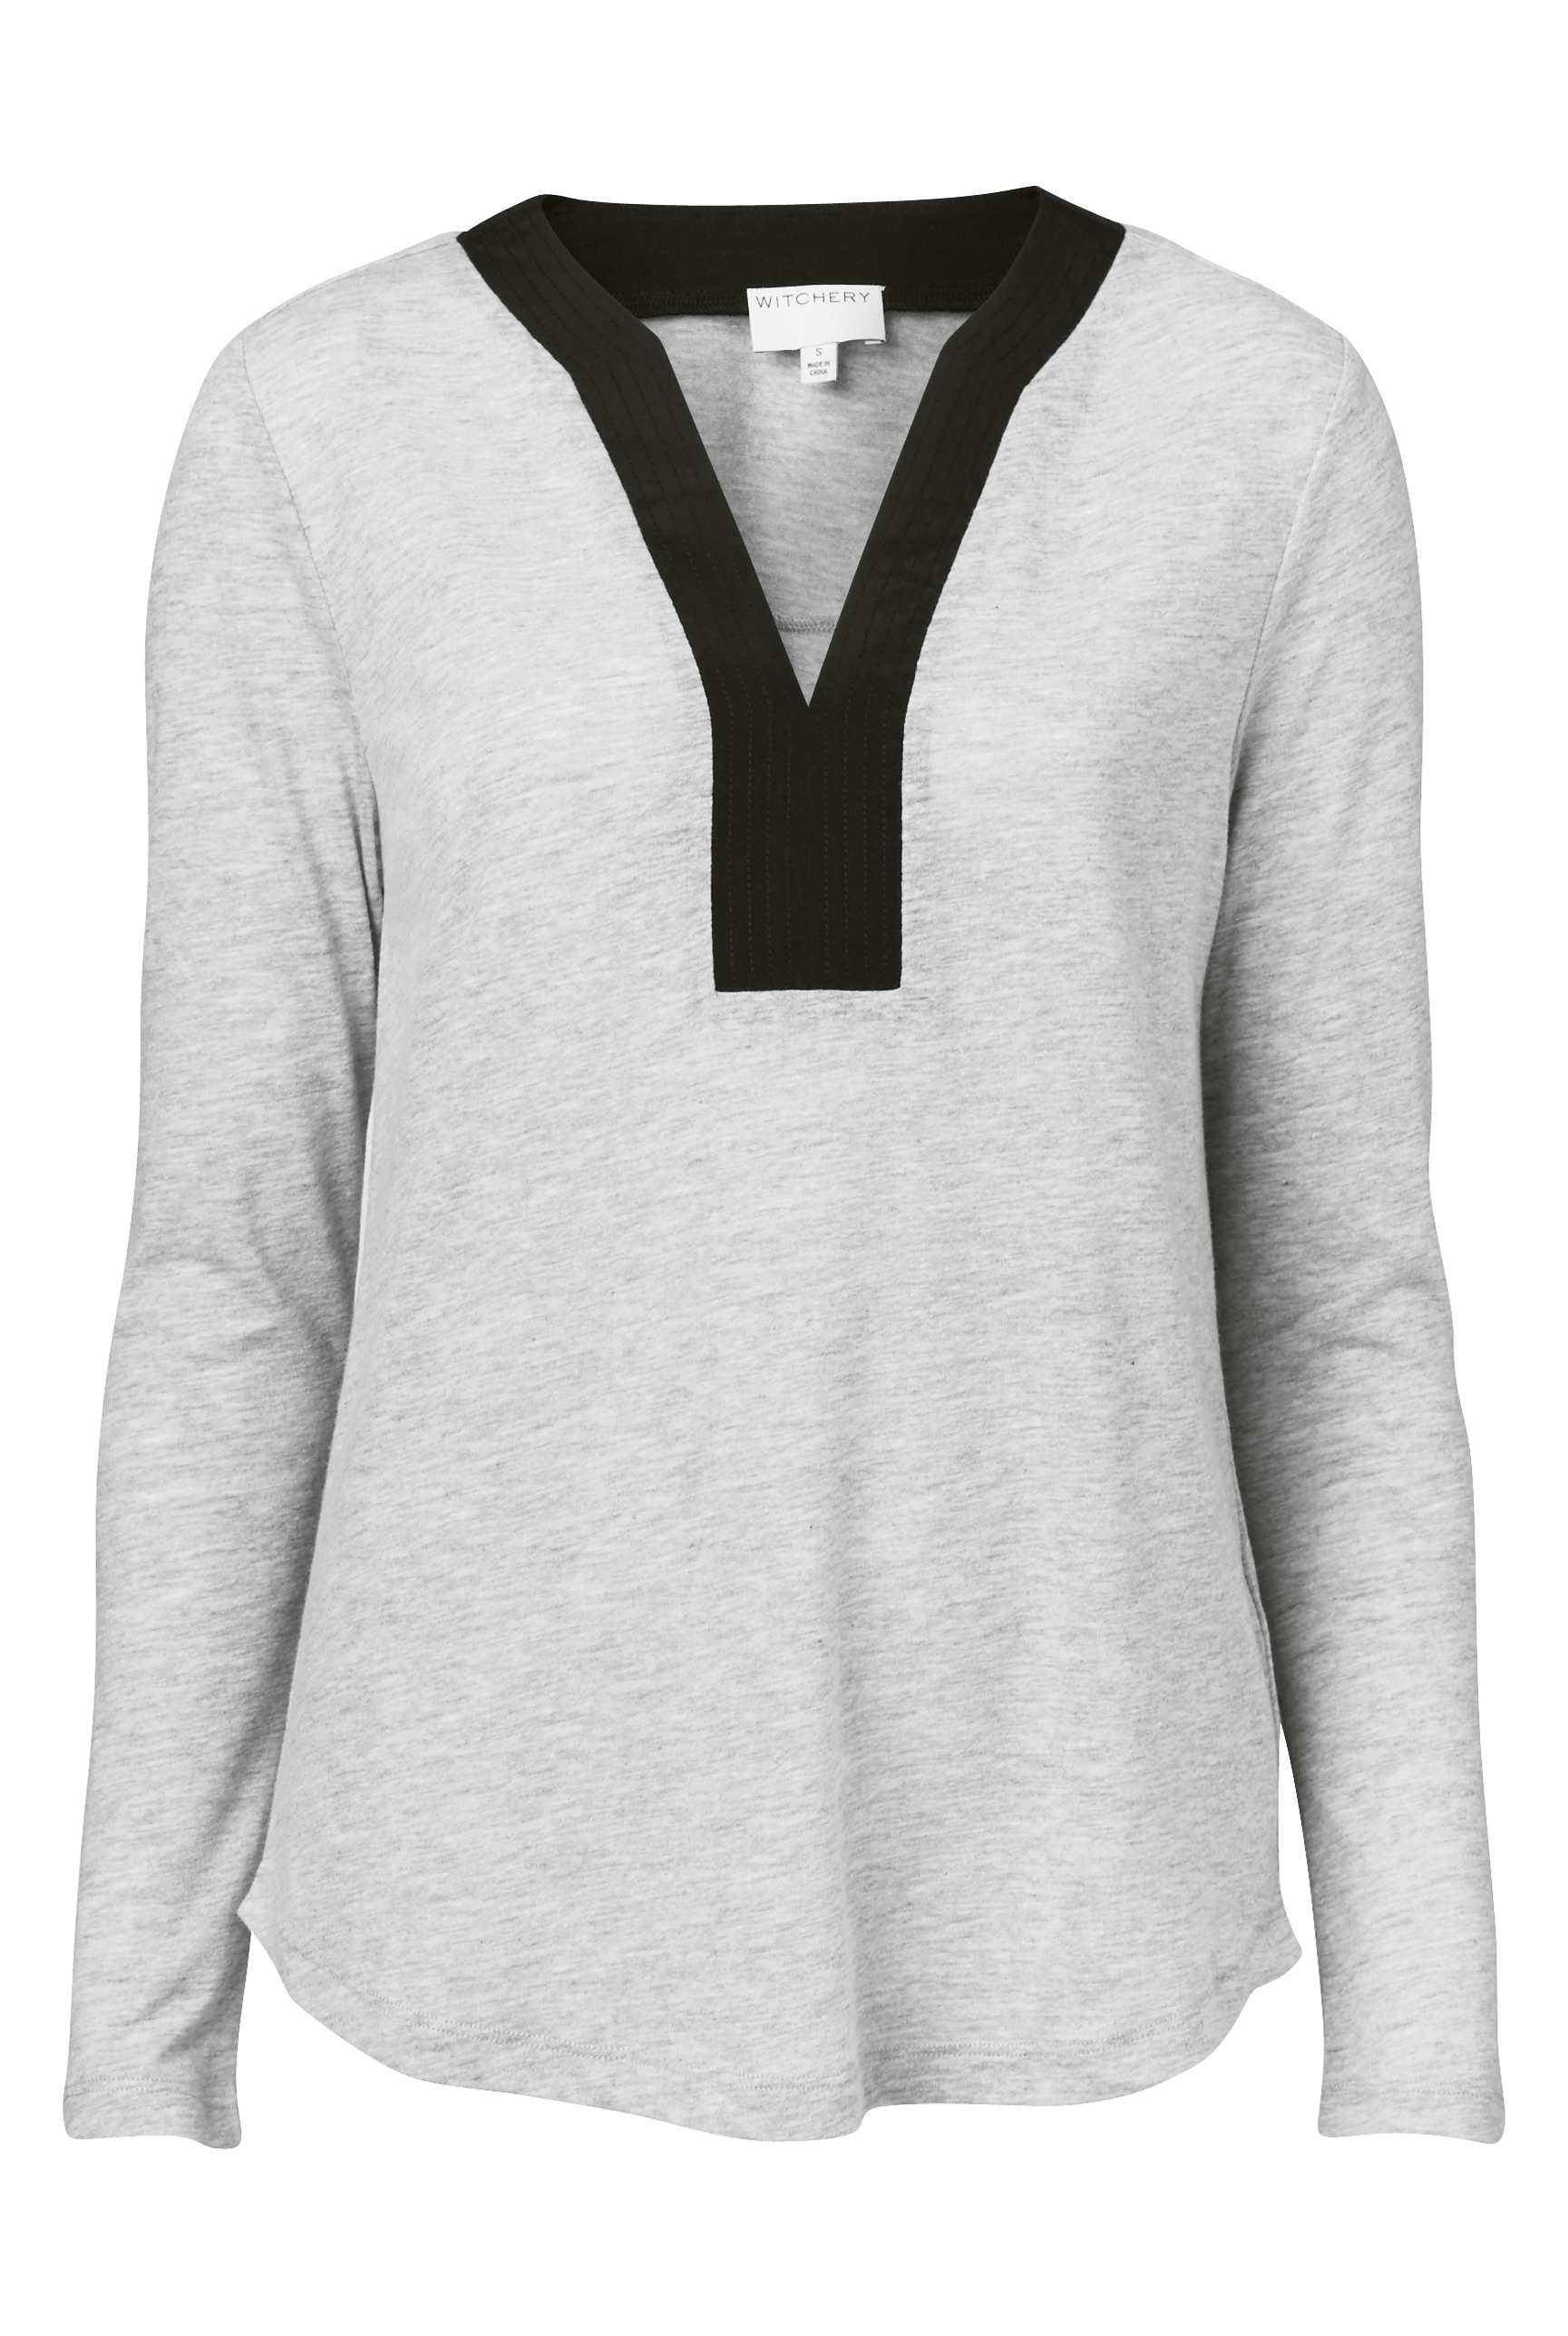 60193425_Witchery Woven Insert Top (in Light Grey Marle), RRP$79.90